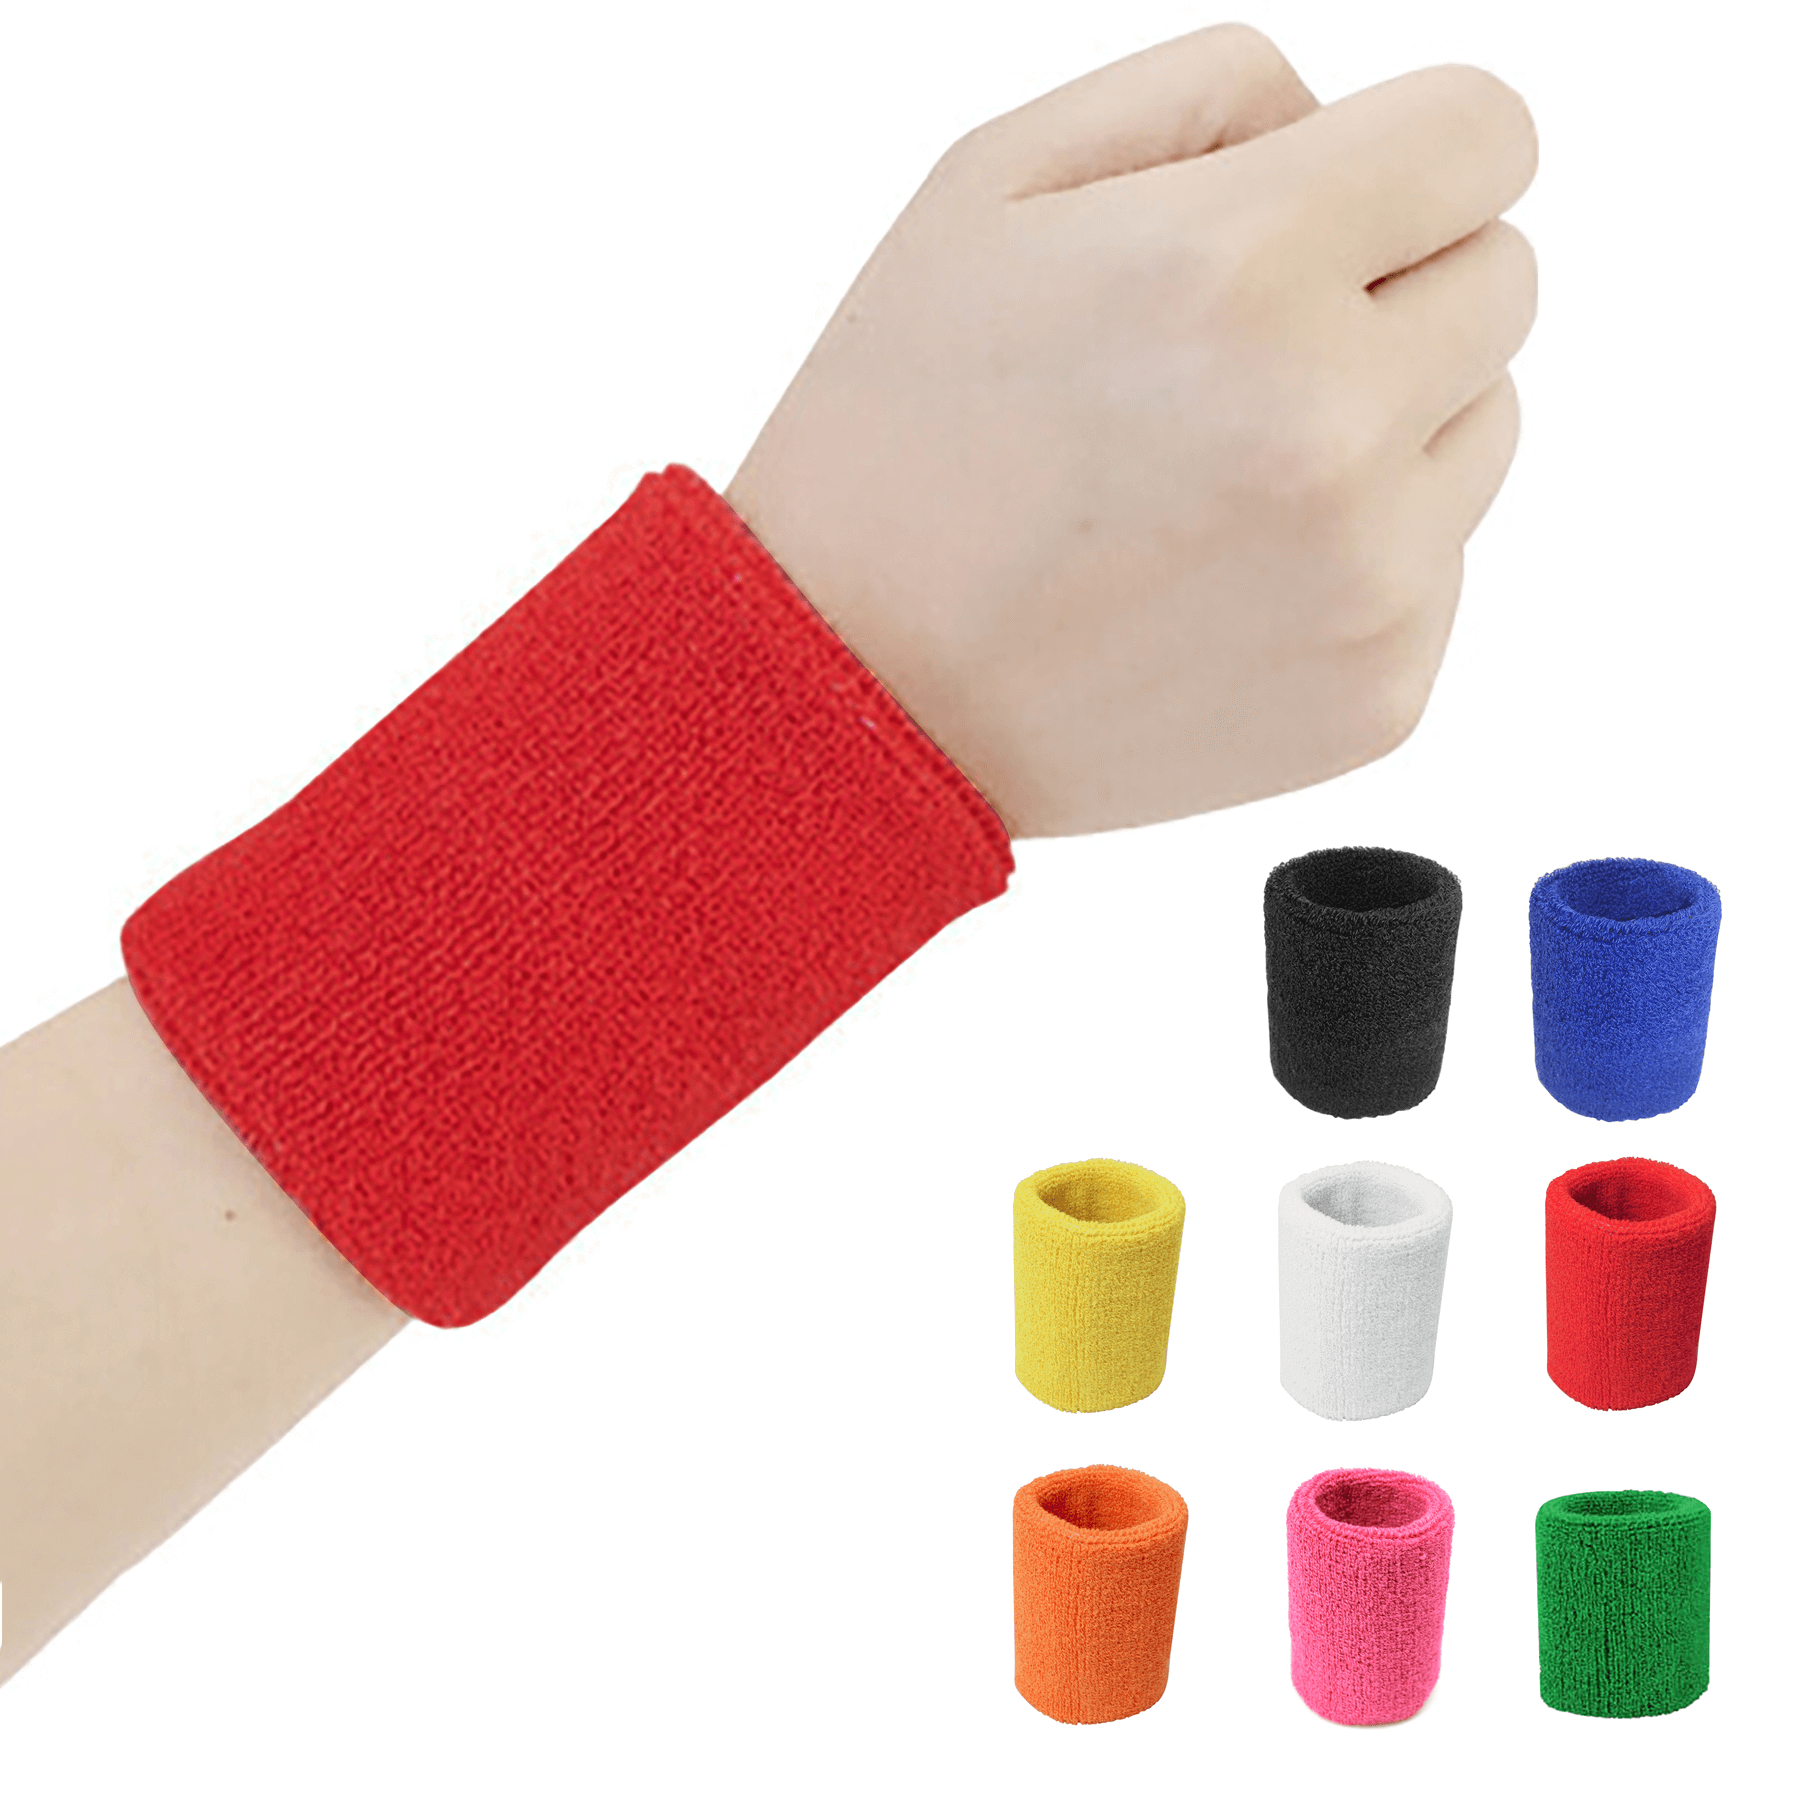 Custom Embroidered Terry Cotton Sports Wristbands - Custom Embroidered Terry Cotton Sports Wristbands